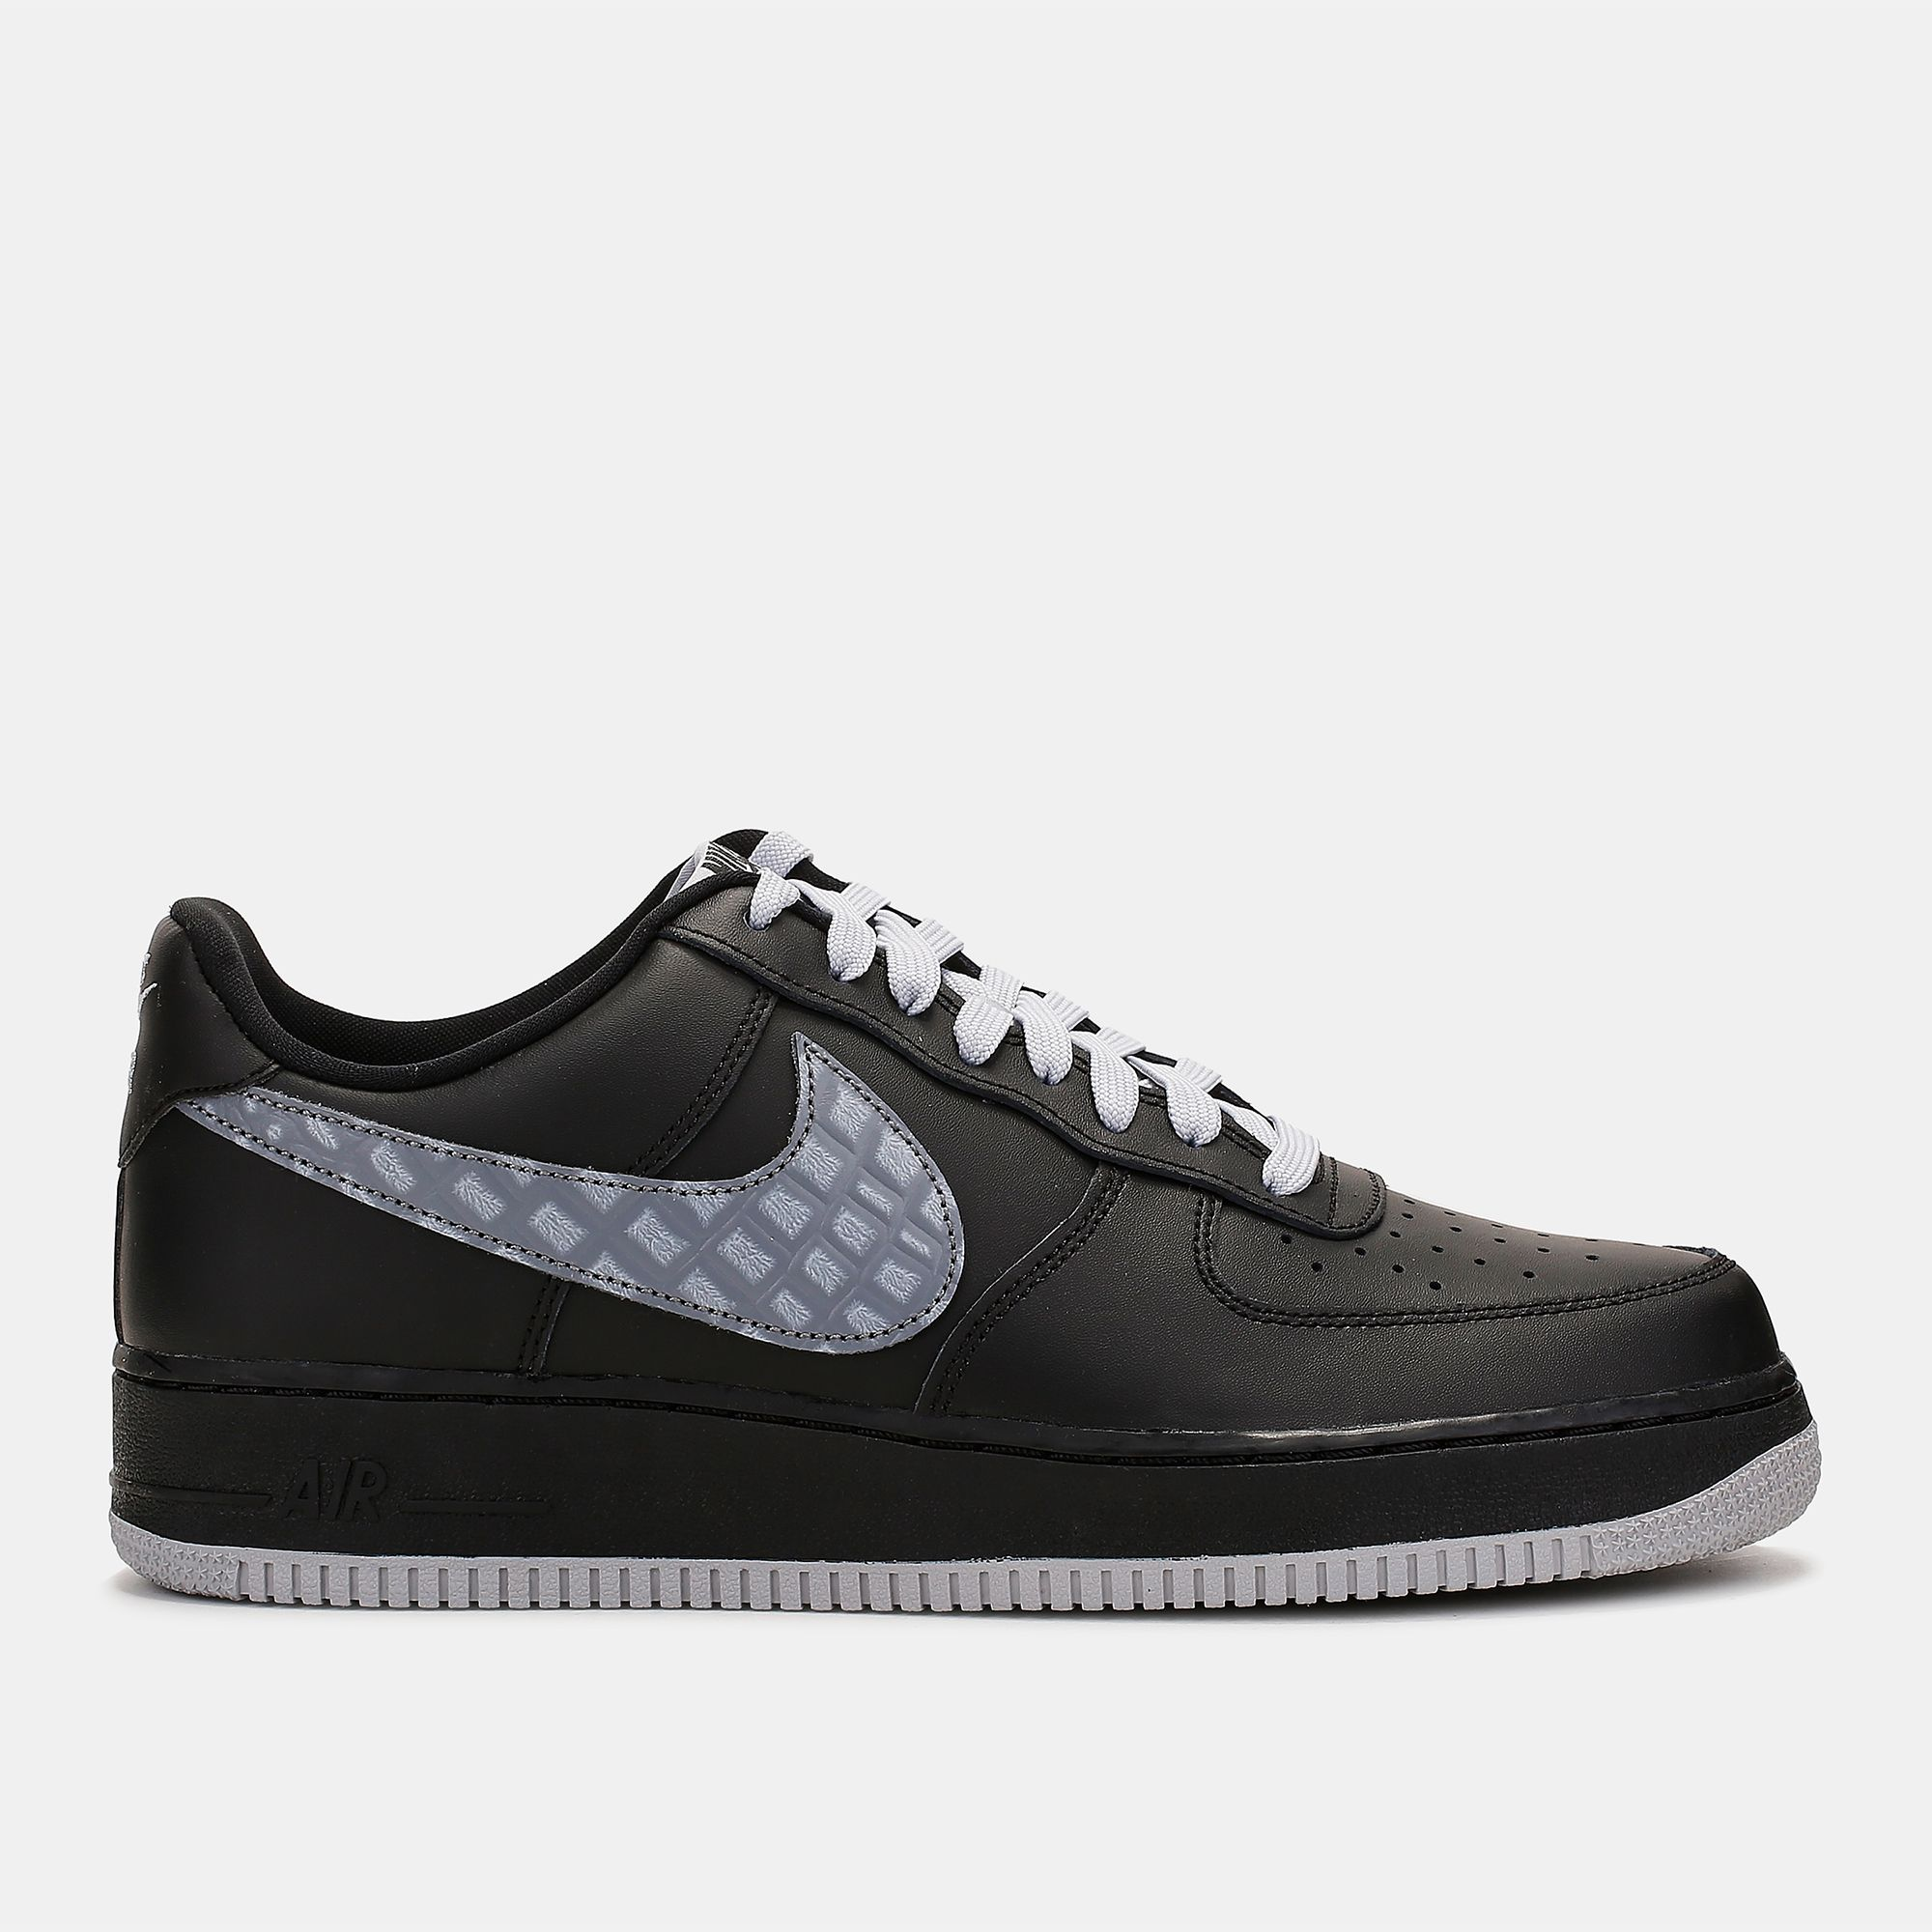 Nike Air Force 1 '07 LV8 Shoe